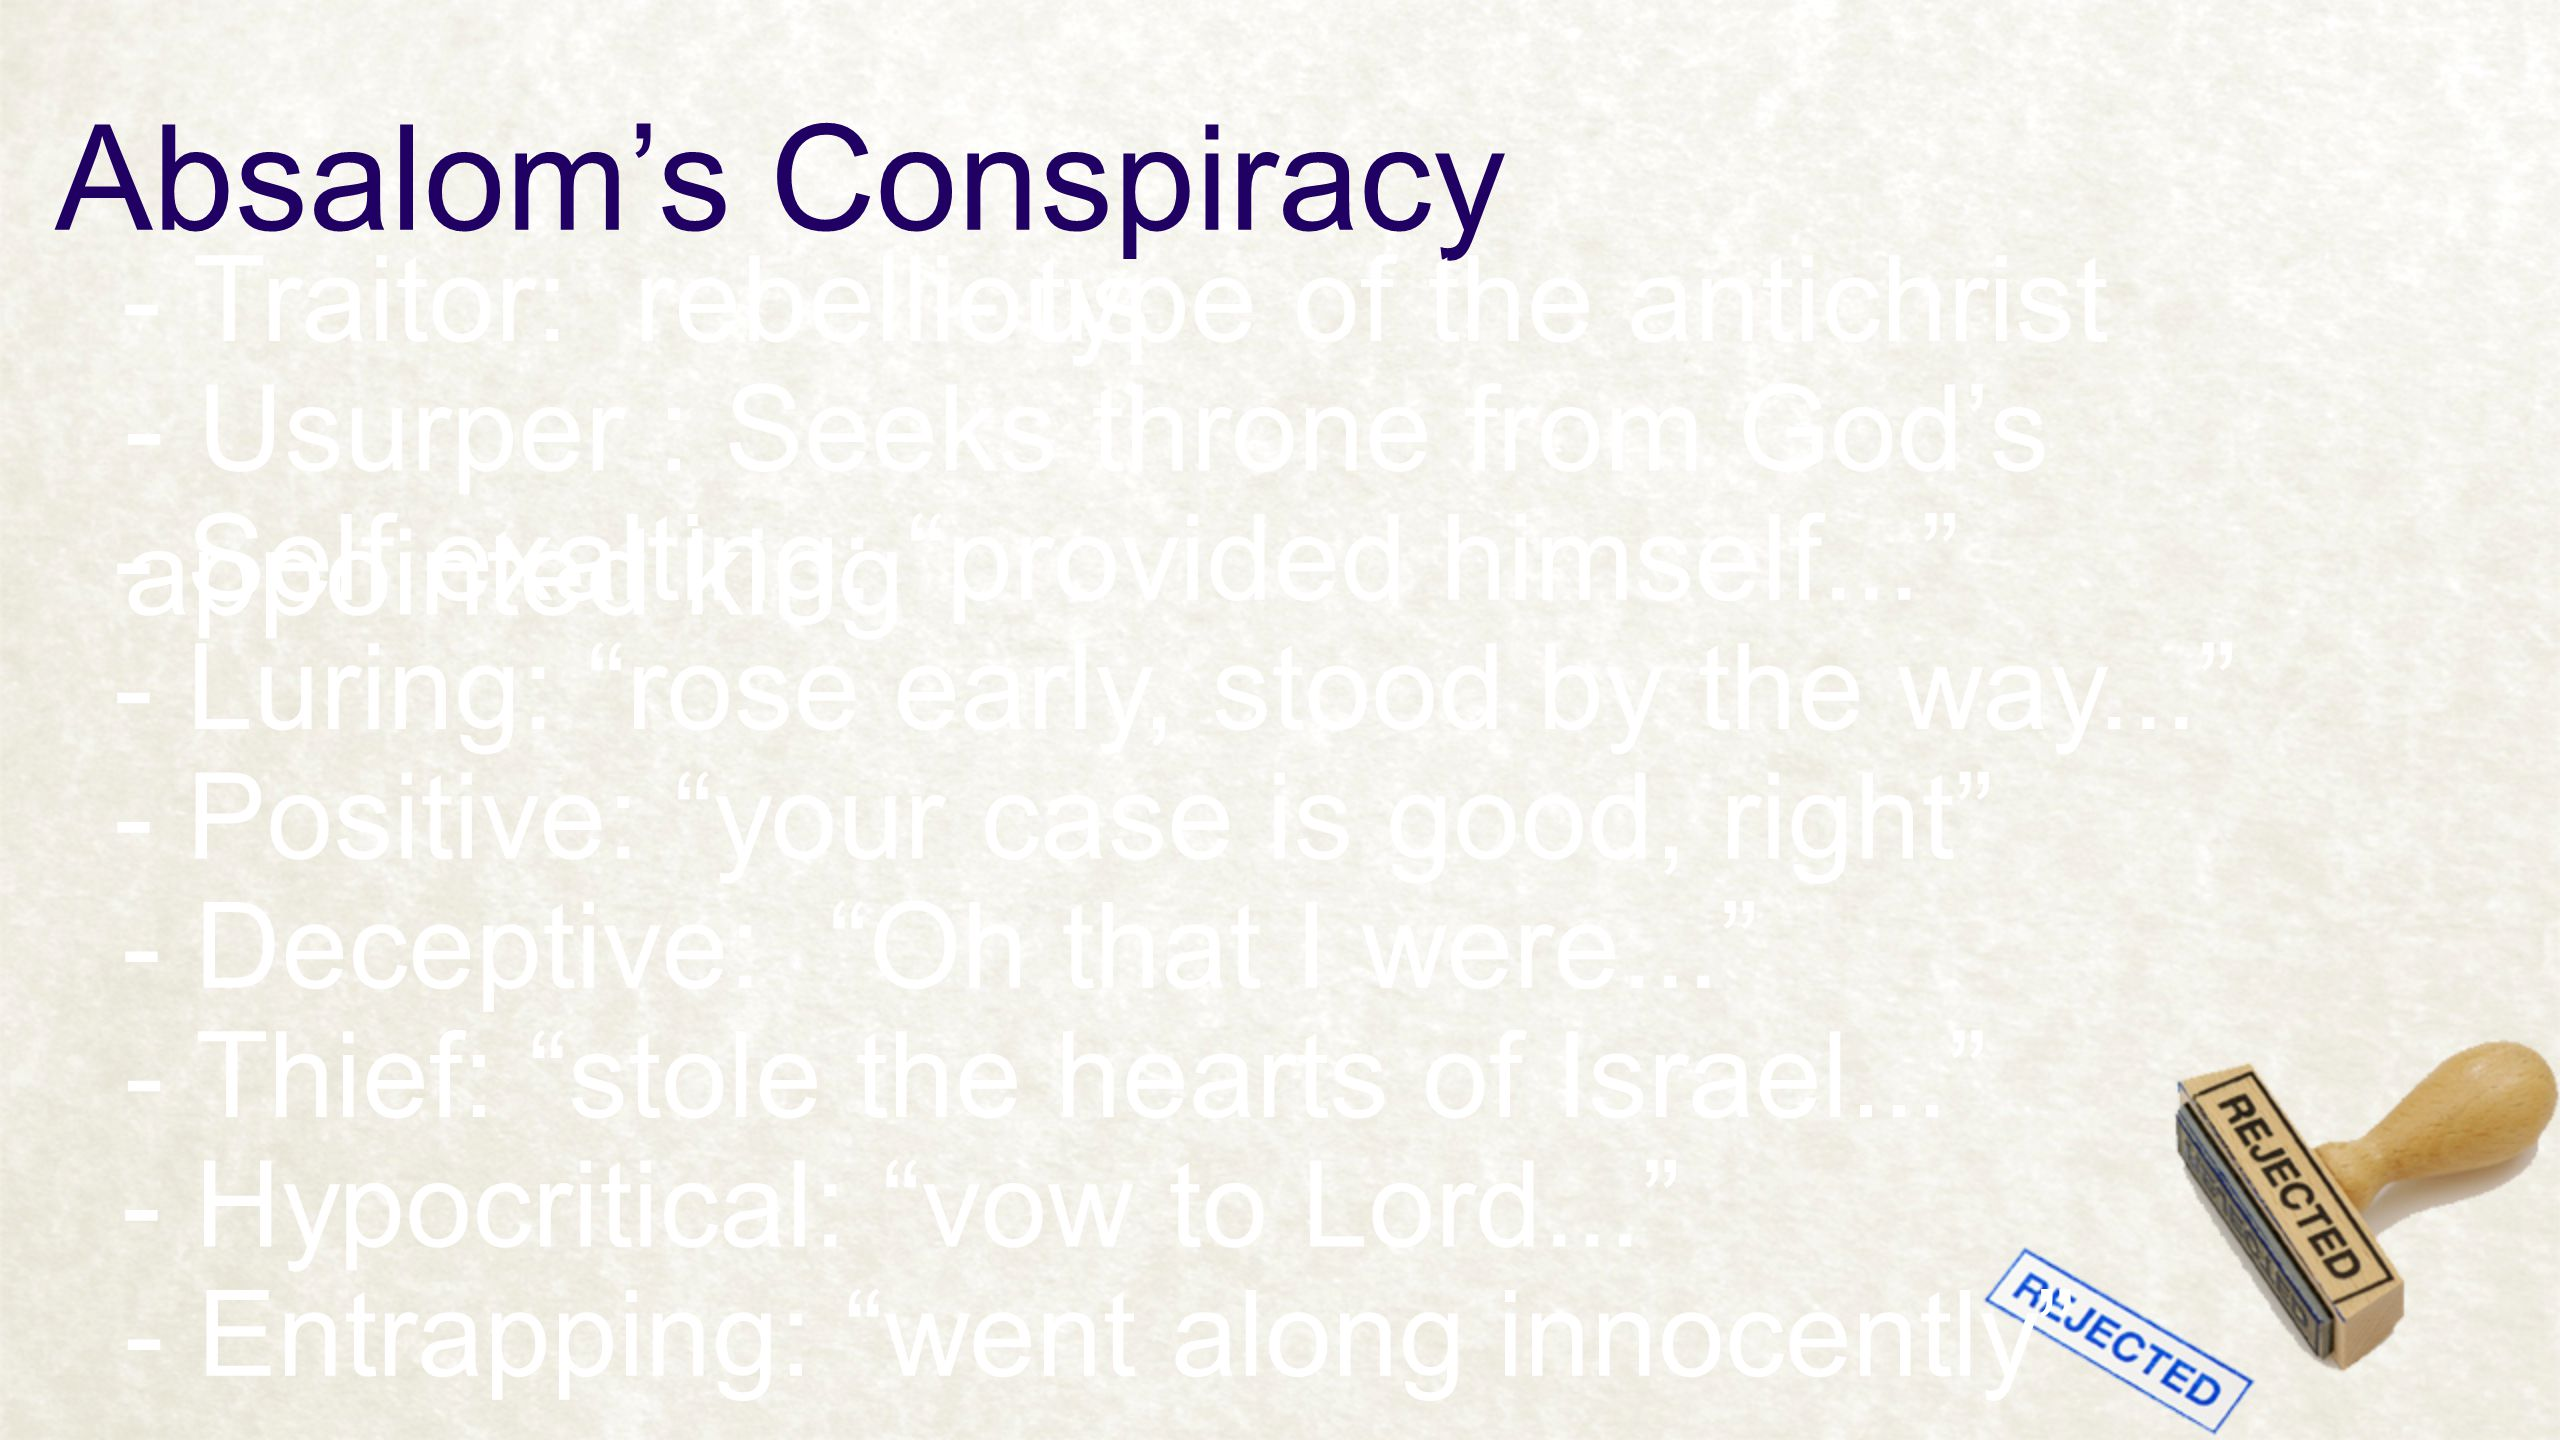 Absalom's Conspiracy - Traitor: rebellious- type of the antichrist - Usurper : Seeks throne from God's appointed king - Self exalting: provided himself... - Luring: rose early, stood by the way... - Positive: your case is good, right - Deceptive: Oh that I were... - Thief: stole the hearts of Israel... - Hypocritical: vow to Lord... - Entrapping: went along innocently